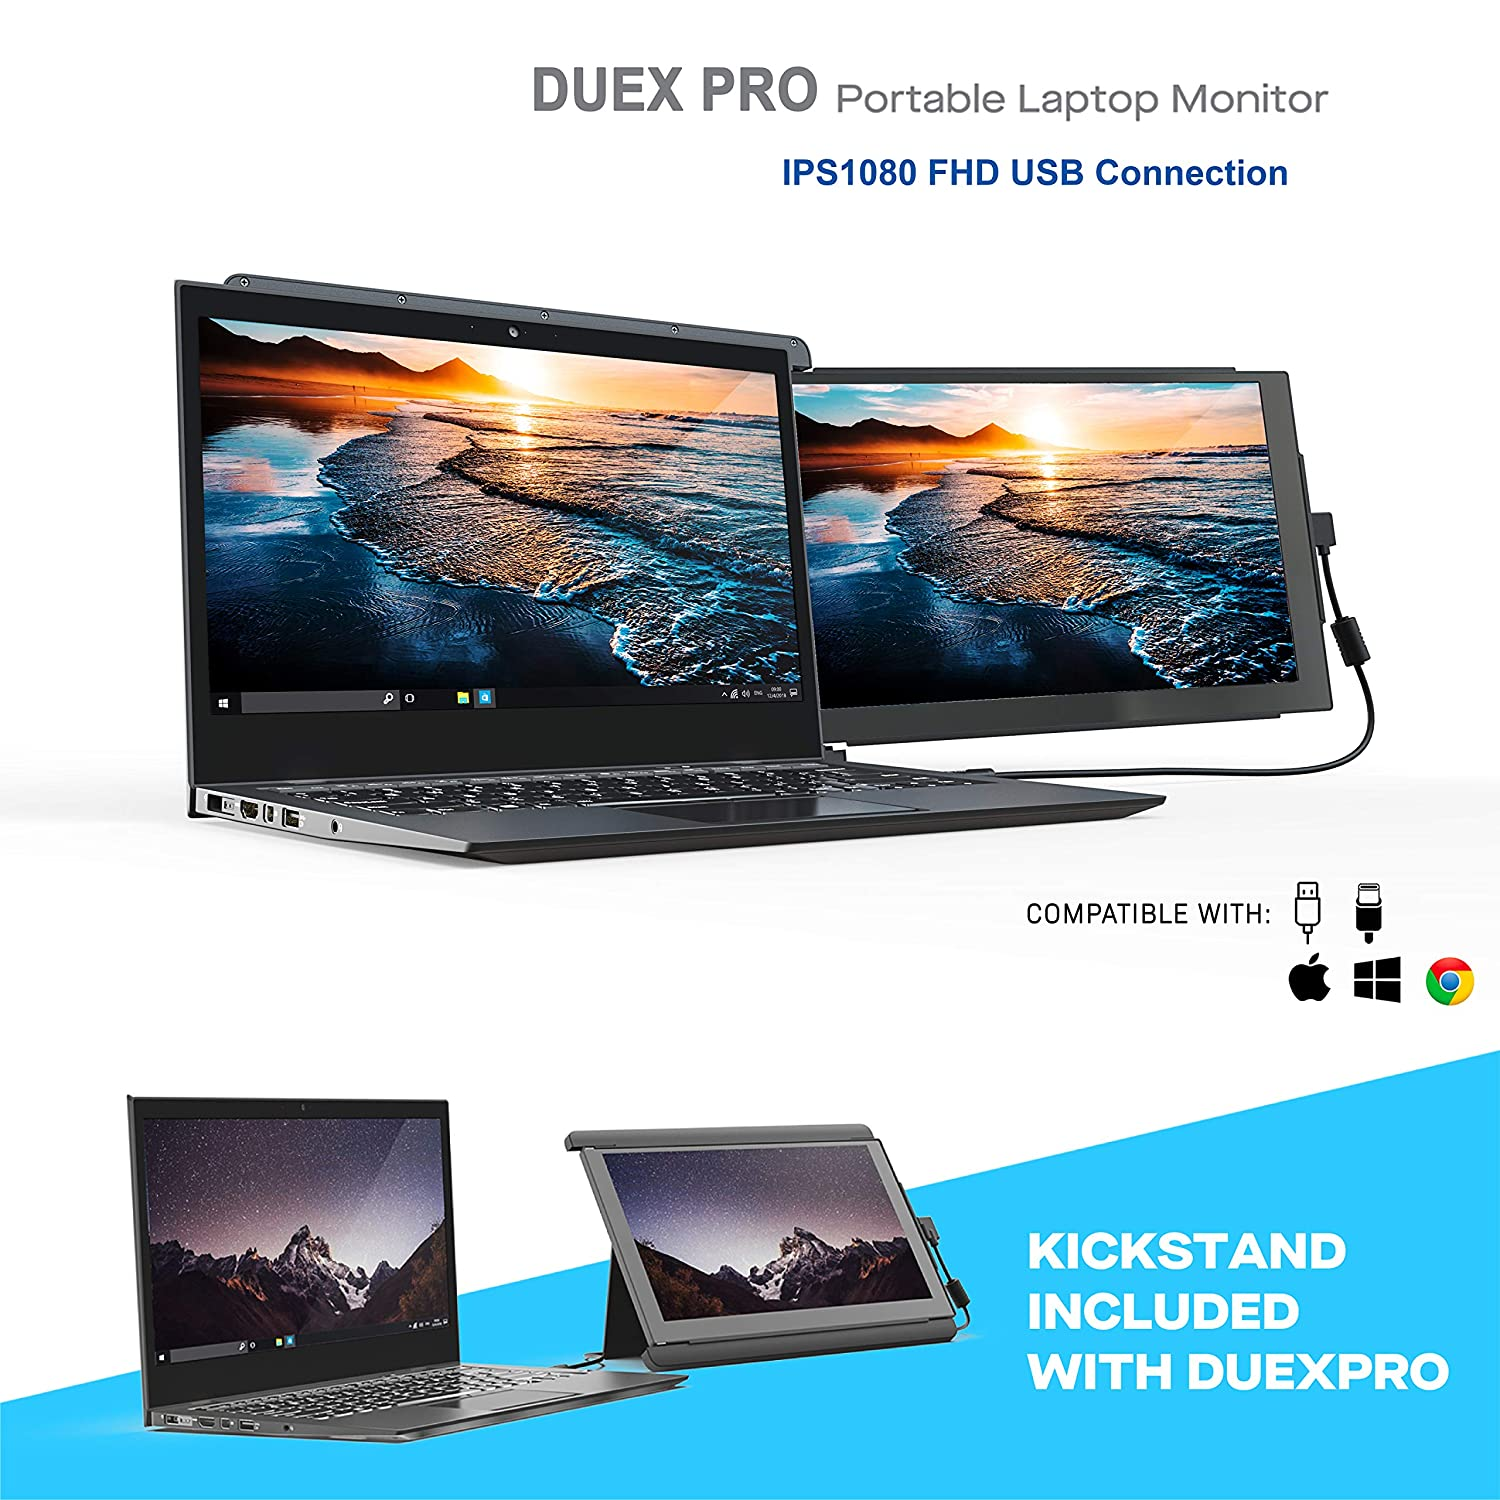 Portable Monitor -Duex Pro Upgraded 2.0 with Kickstand Combo, 12.5 Inch Full HD IPS Screen for laptops